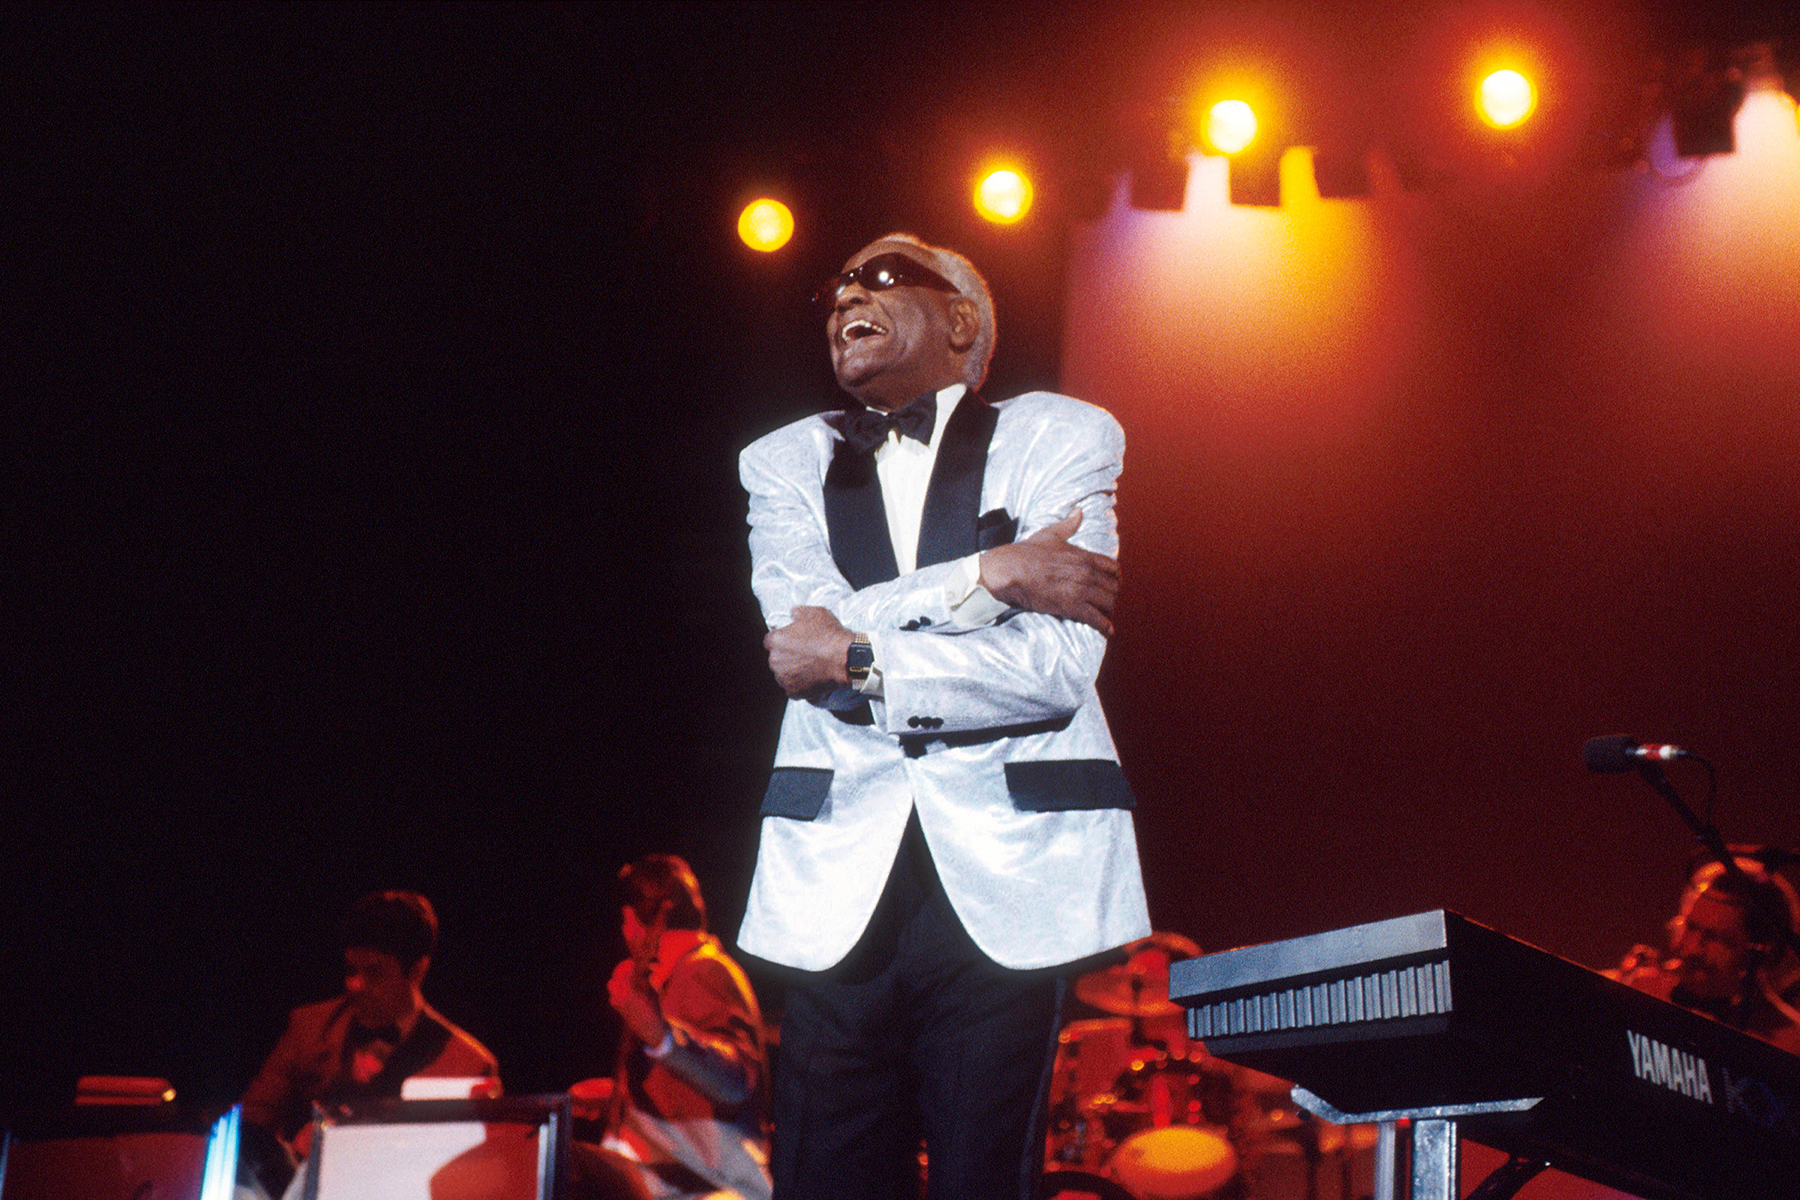 Ray Charles performs on stage, London, 1996. (Photo by Michael Putland/Getty Images)